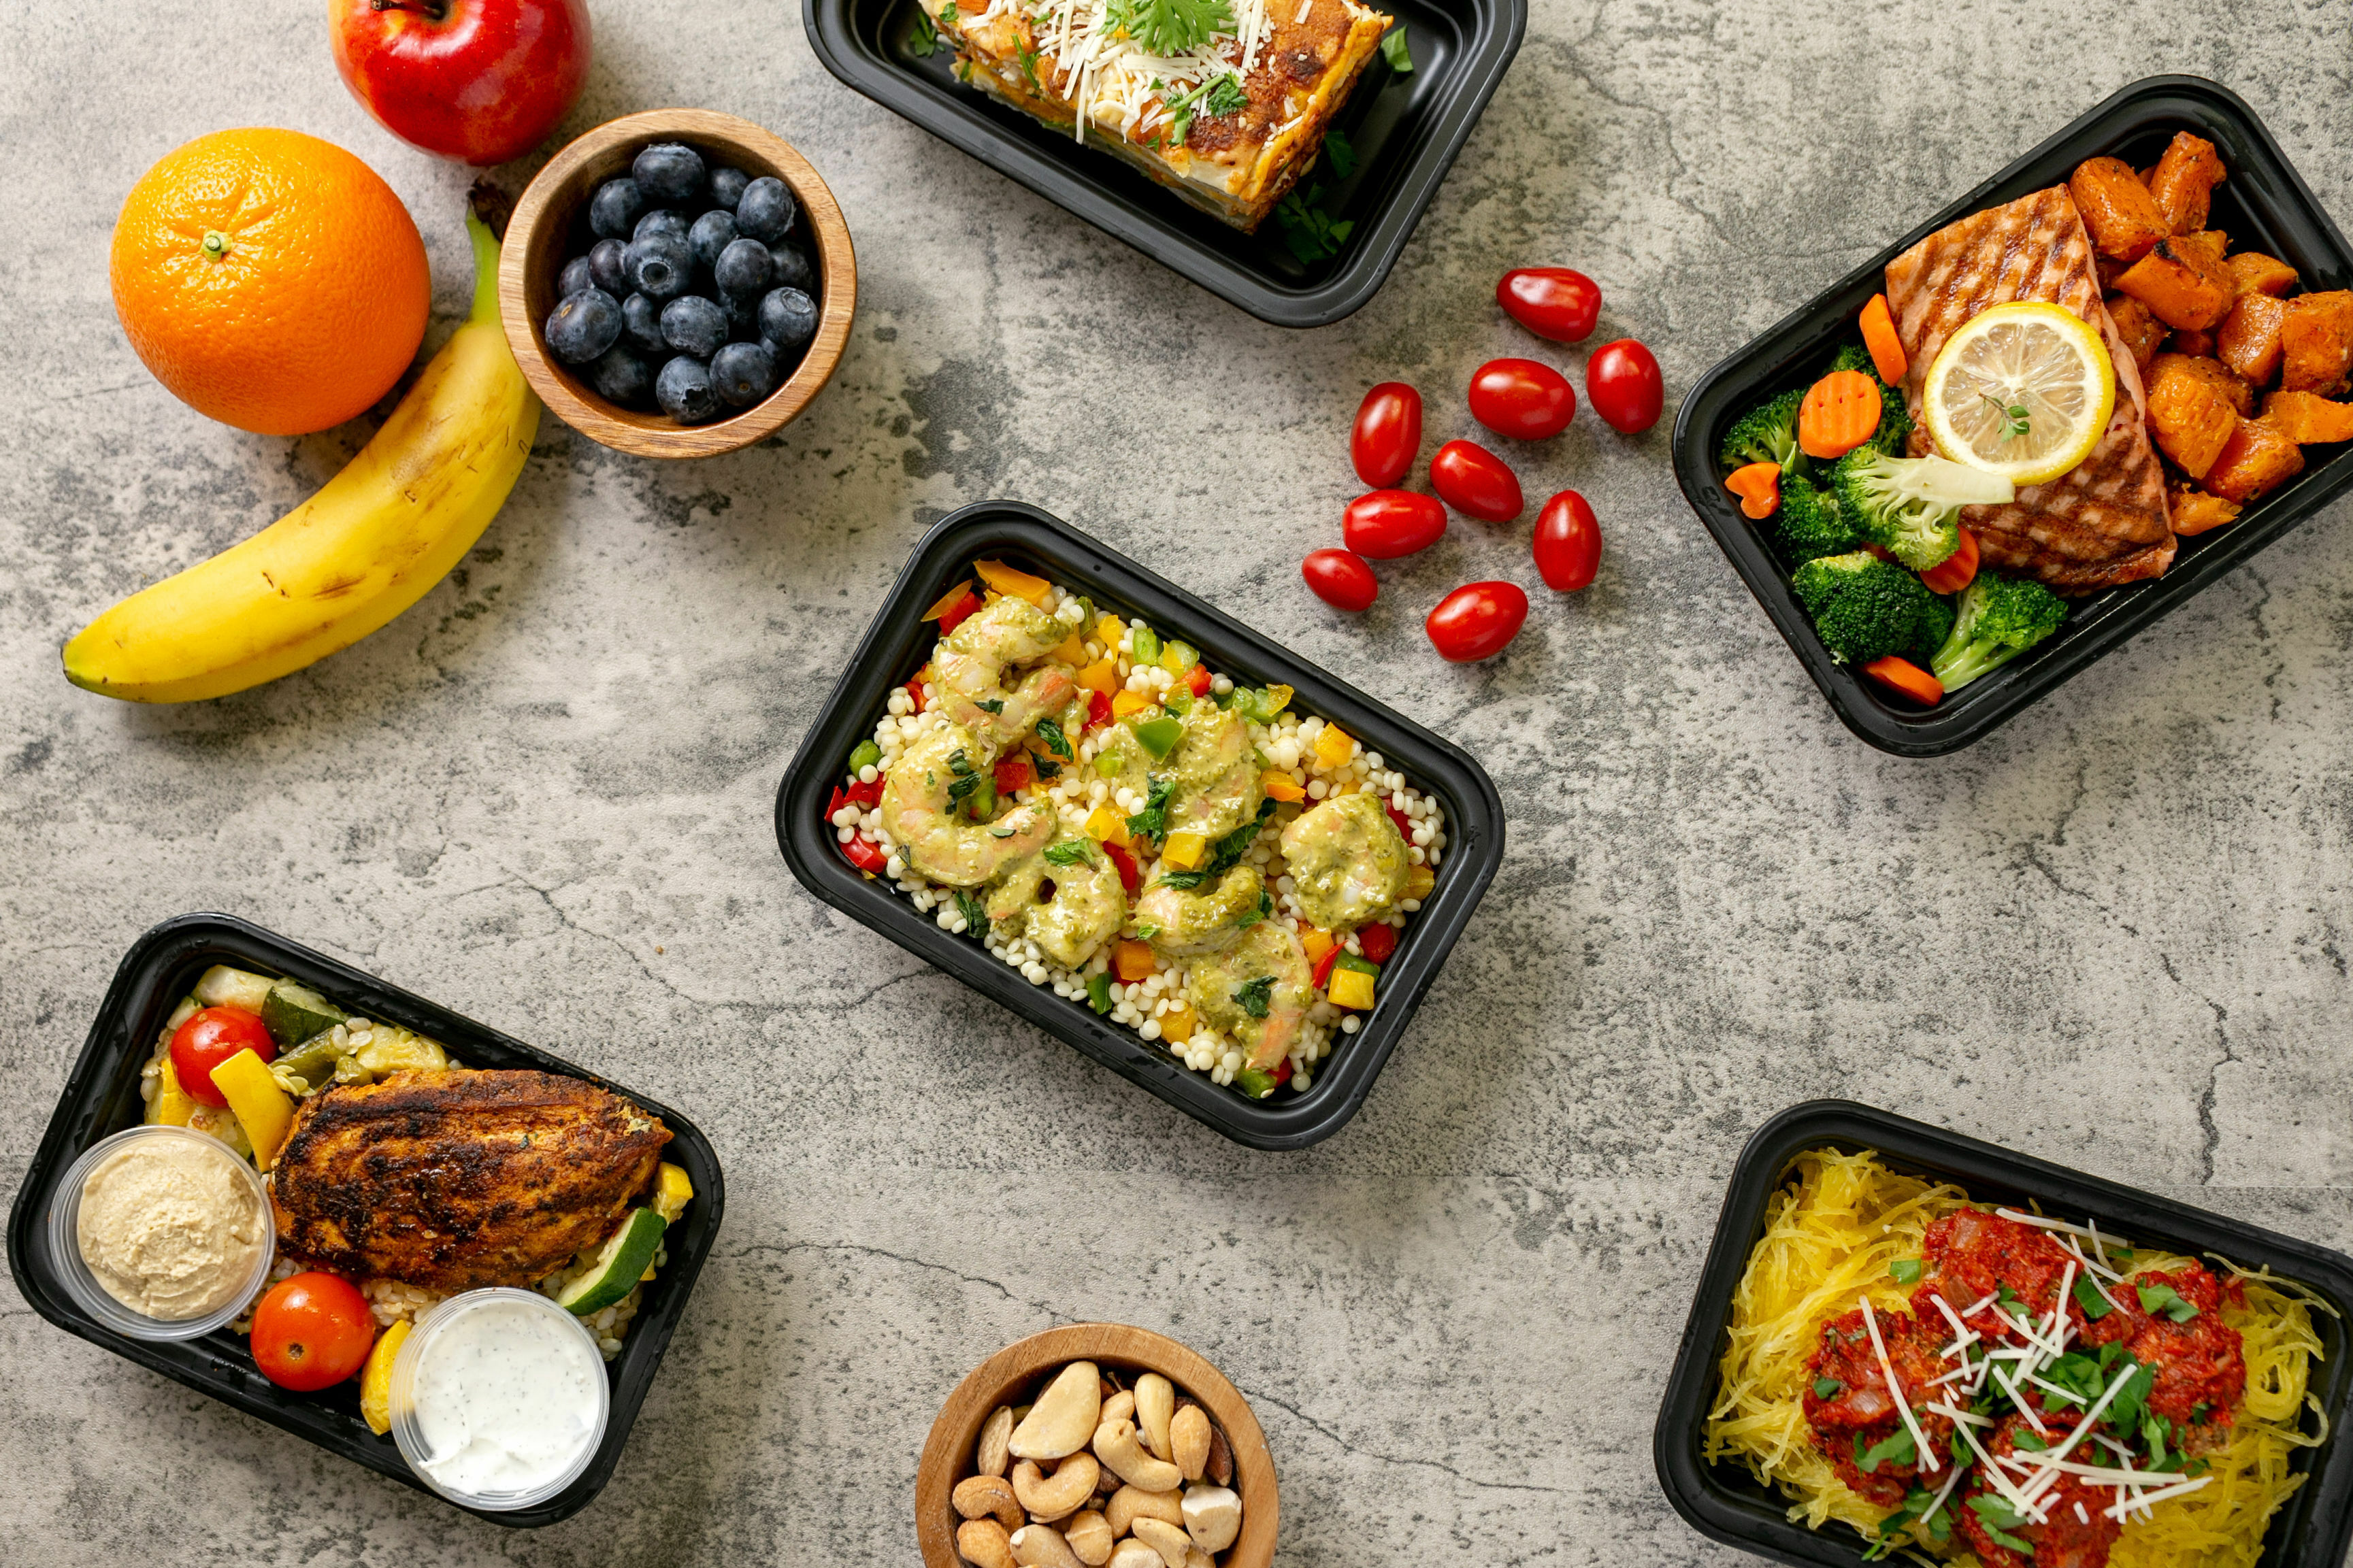 Maryland meal delivery company Healthy Fresh expands | WTOP